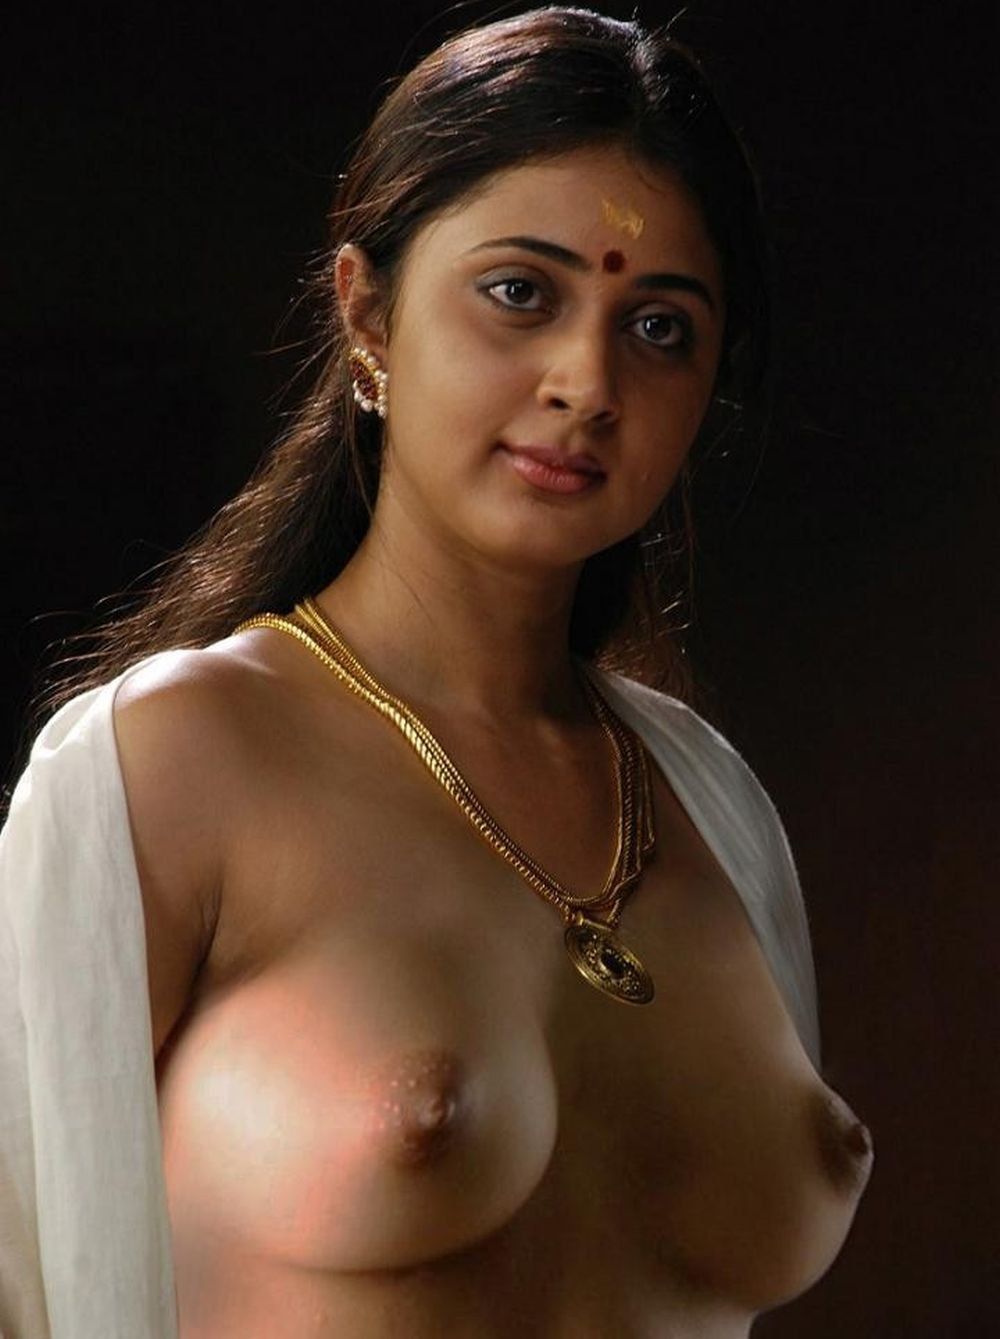 Desi topless half naked girls